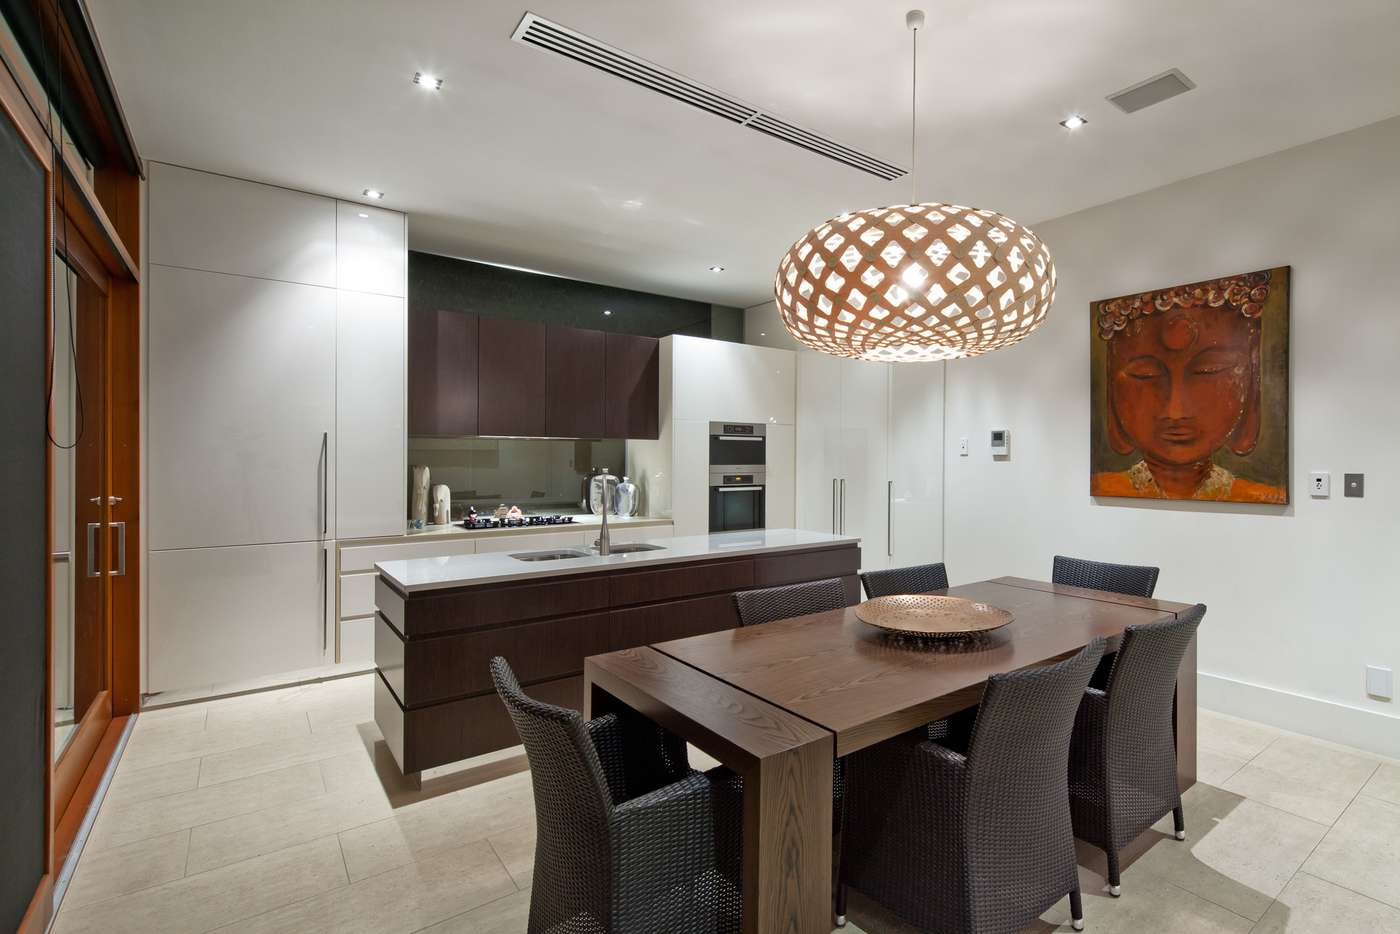 Fifth view of Homely house listing, 3 Muller Street, Norwood SA 5067